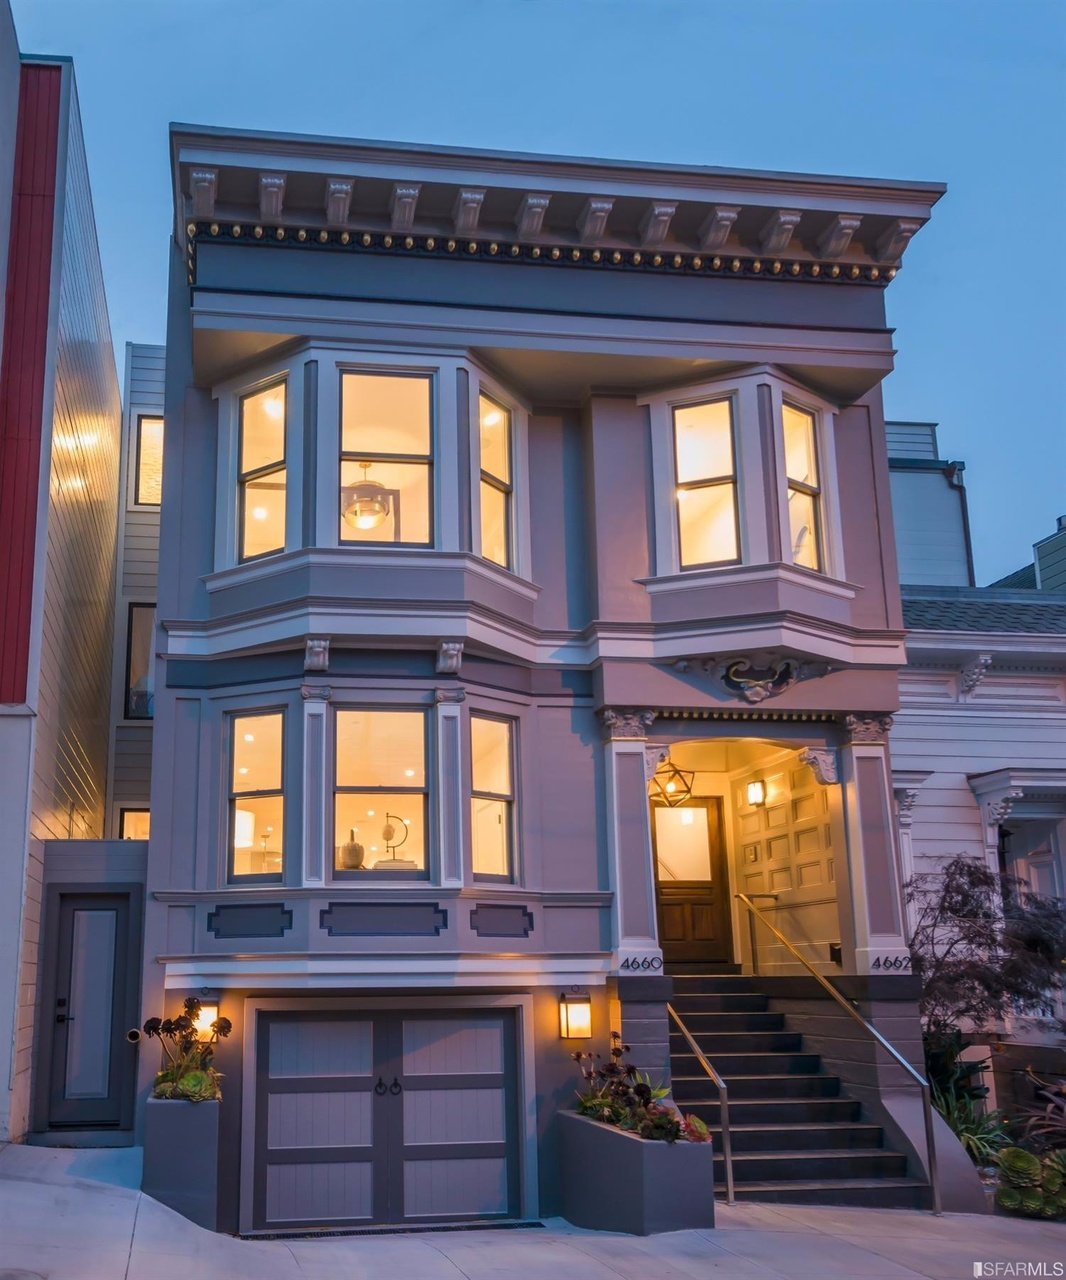 Latest House Designs In Pakistan: 4662 18th St, San Francisco, CA 94114